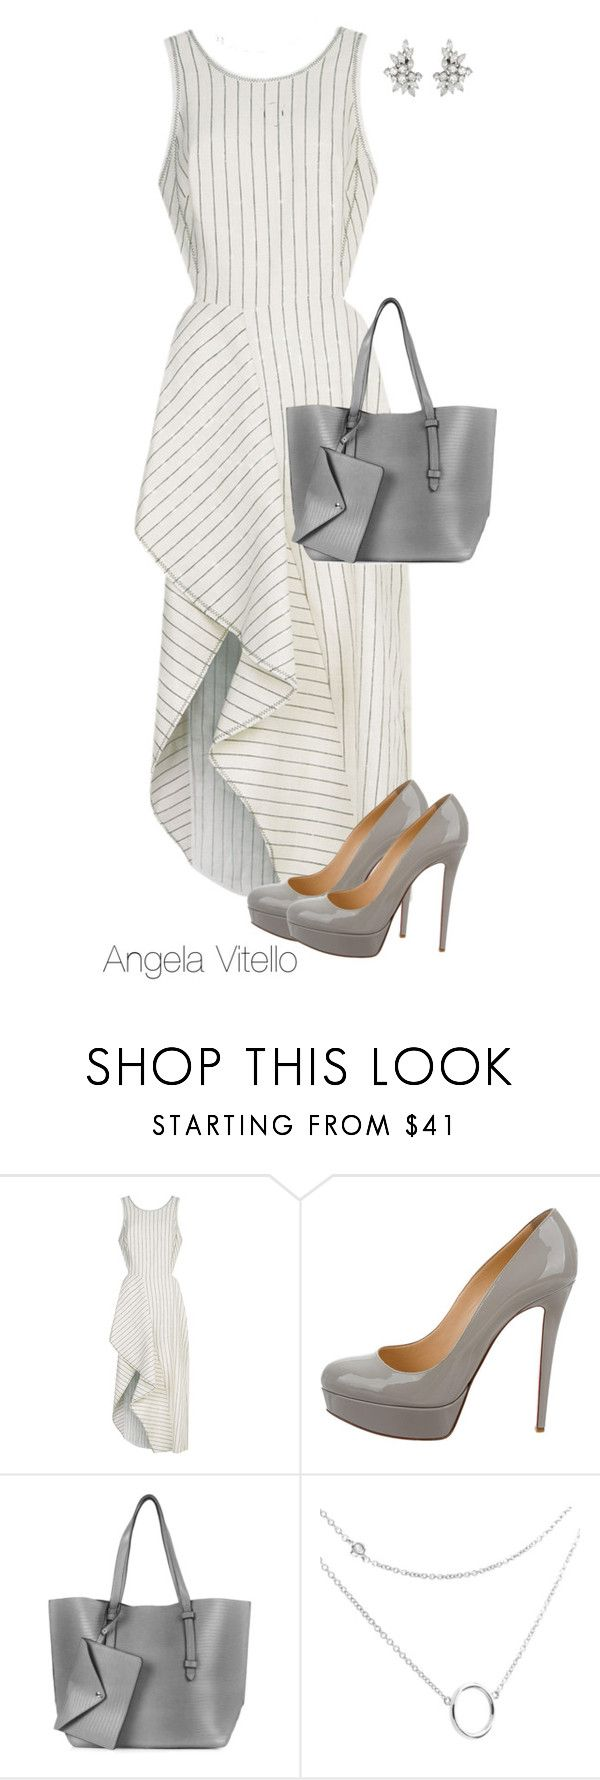 """""""Untitled #725"""" by angela-vitello on Polyvore featuring 3.1 Phillip Lim, Christian Louboutin and Topshop"""